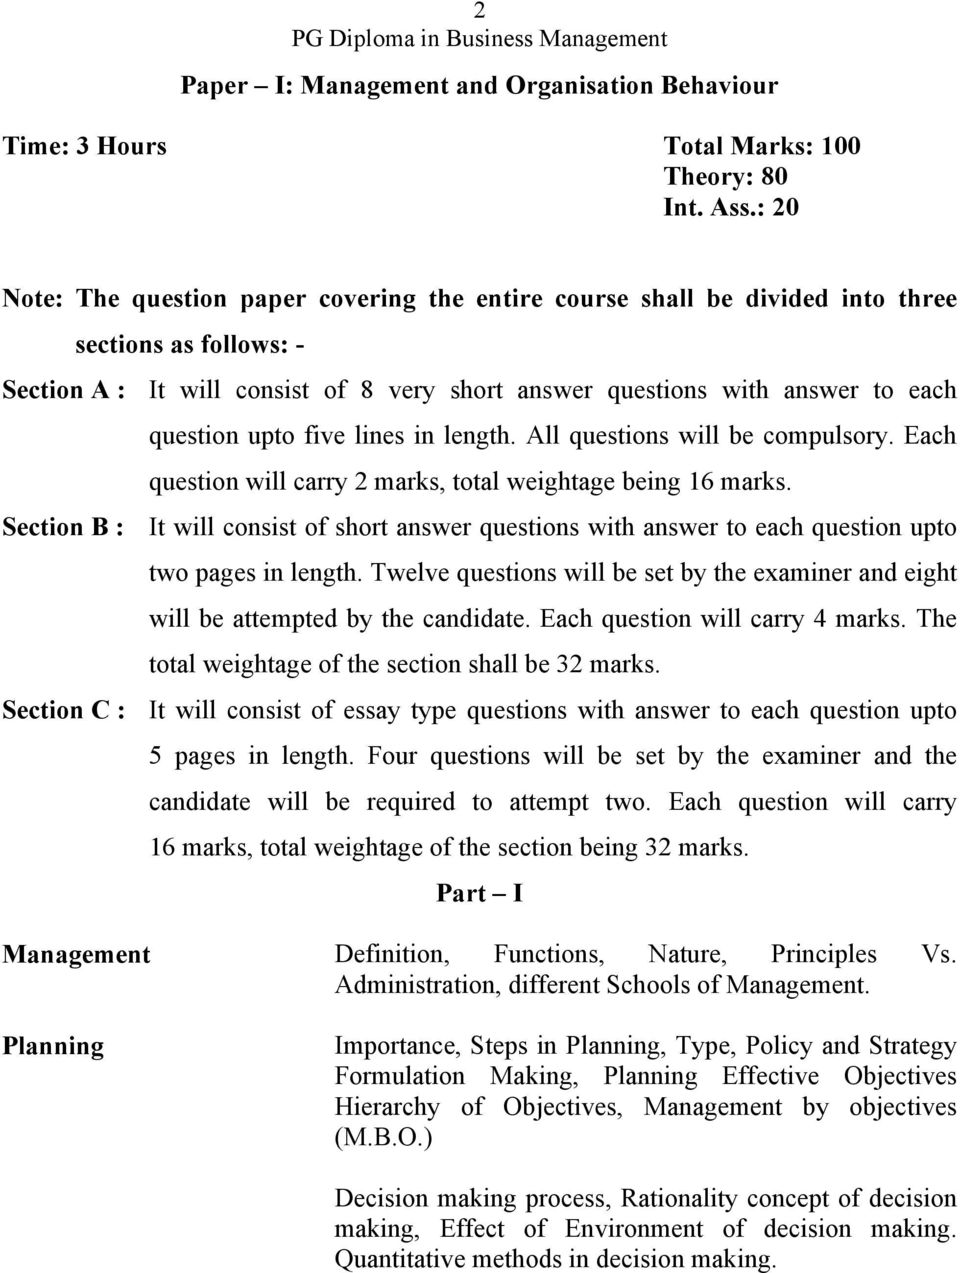 upto five lines in length. All questions will be compulsory. Each question will carry 2 marks, total weightage being 16 marks.